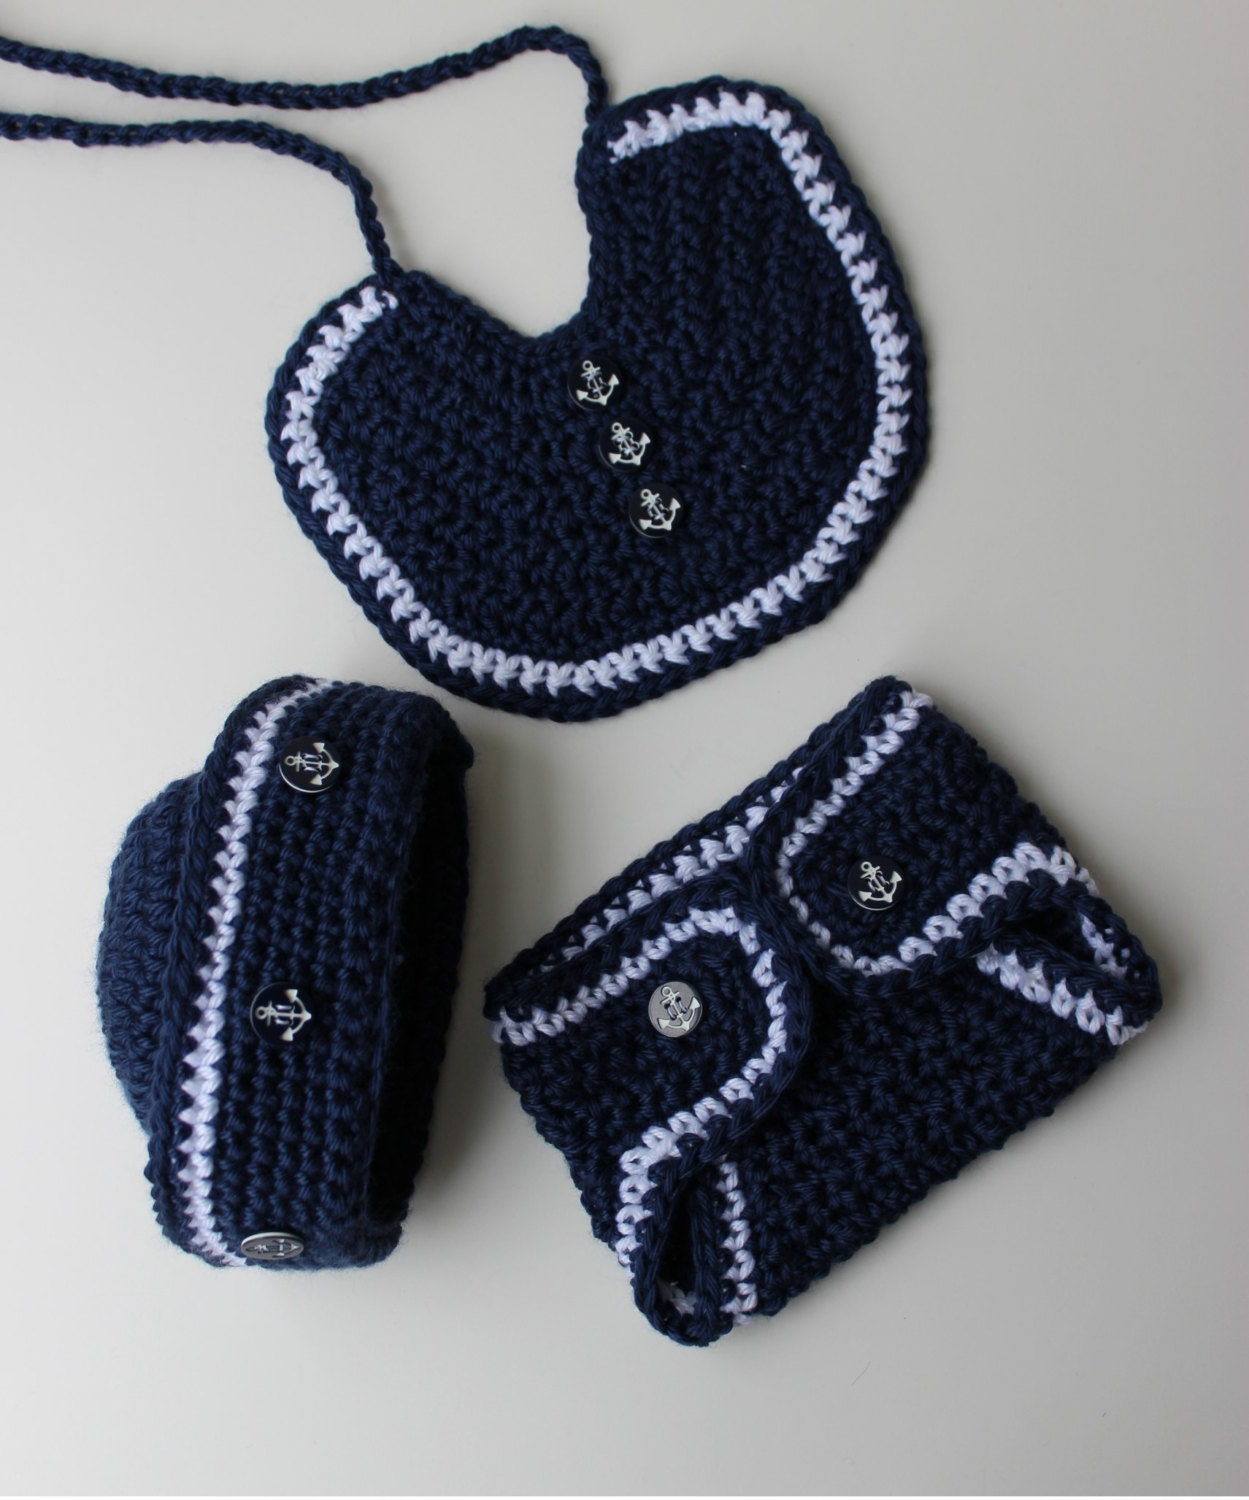 Crochet Pattern Sailor Hat : Crochet Sailor Hat Pattern Crochet Bib Pattern Crochet